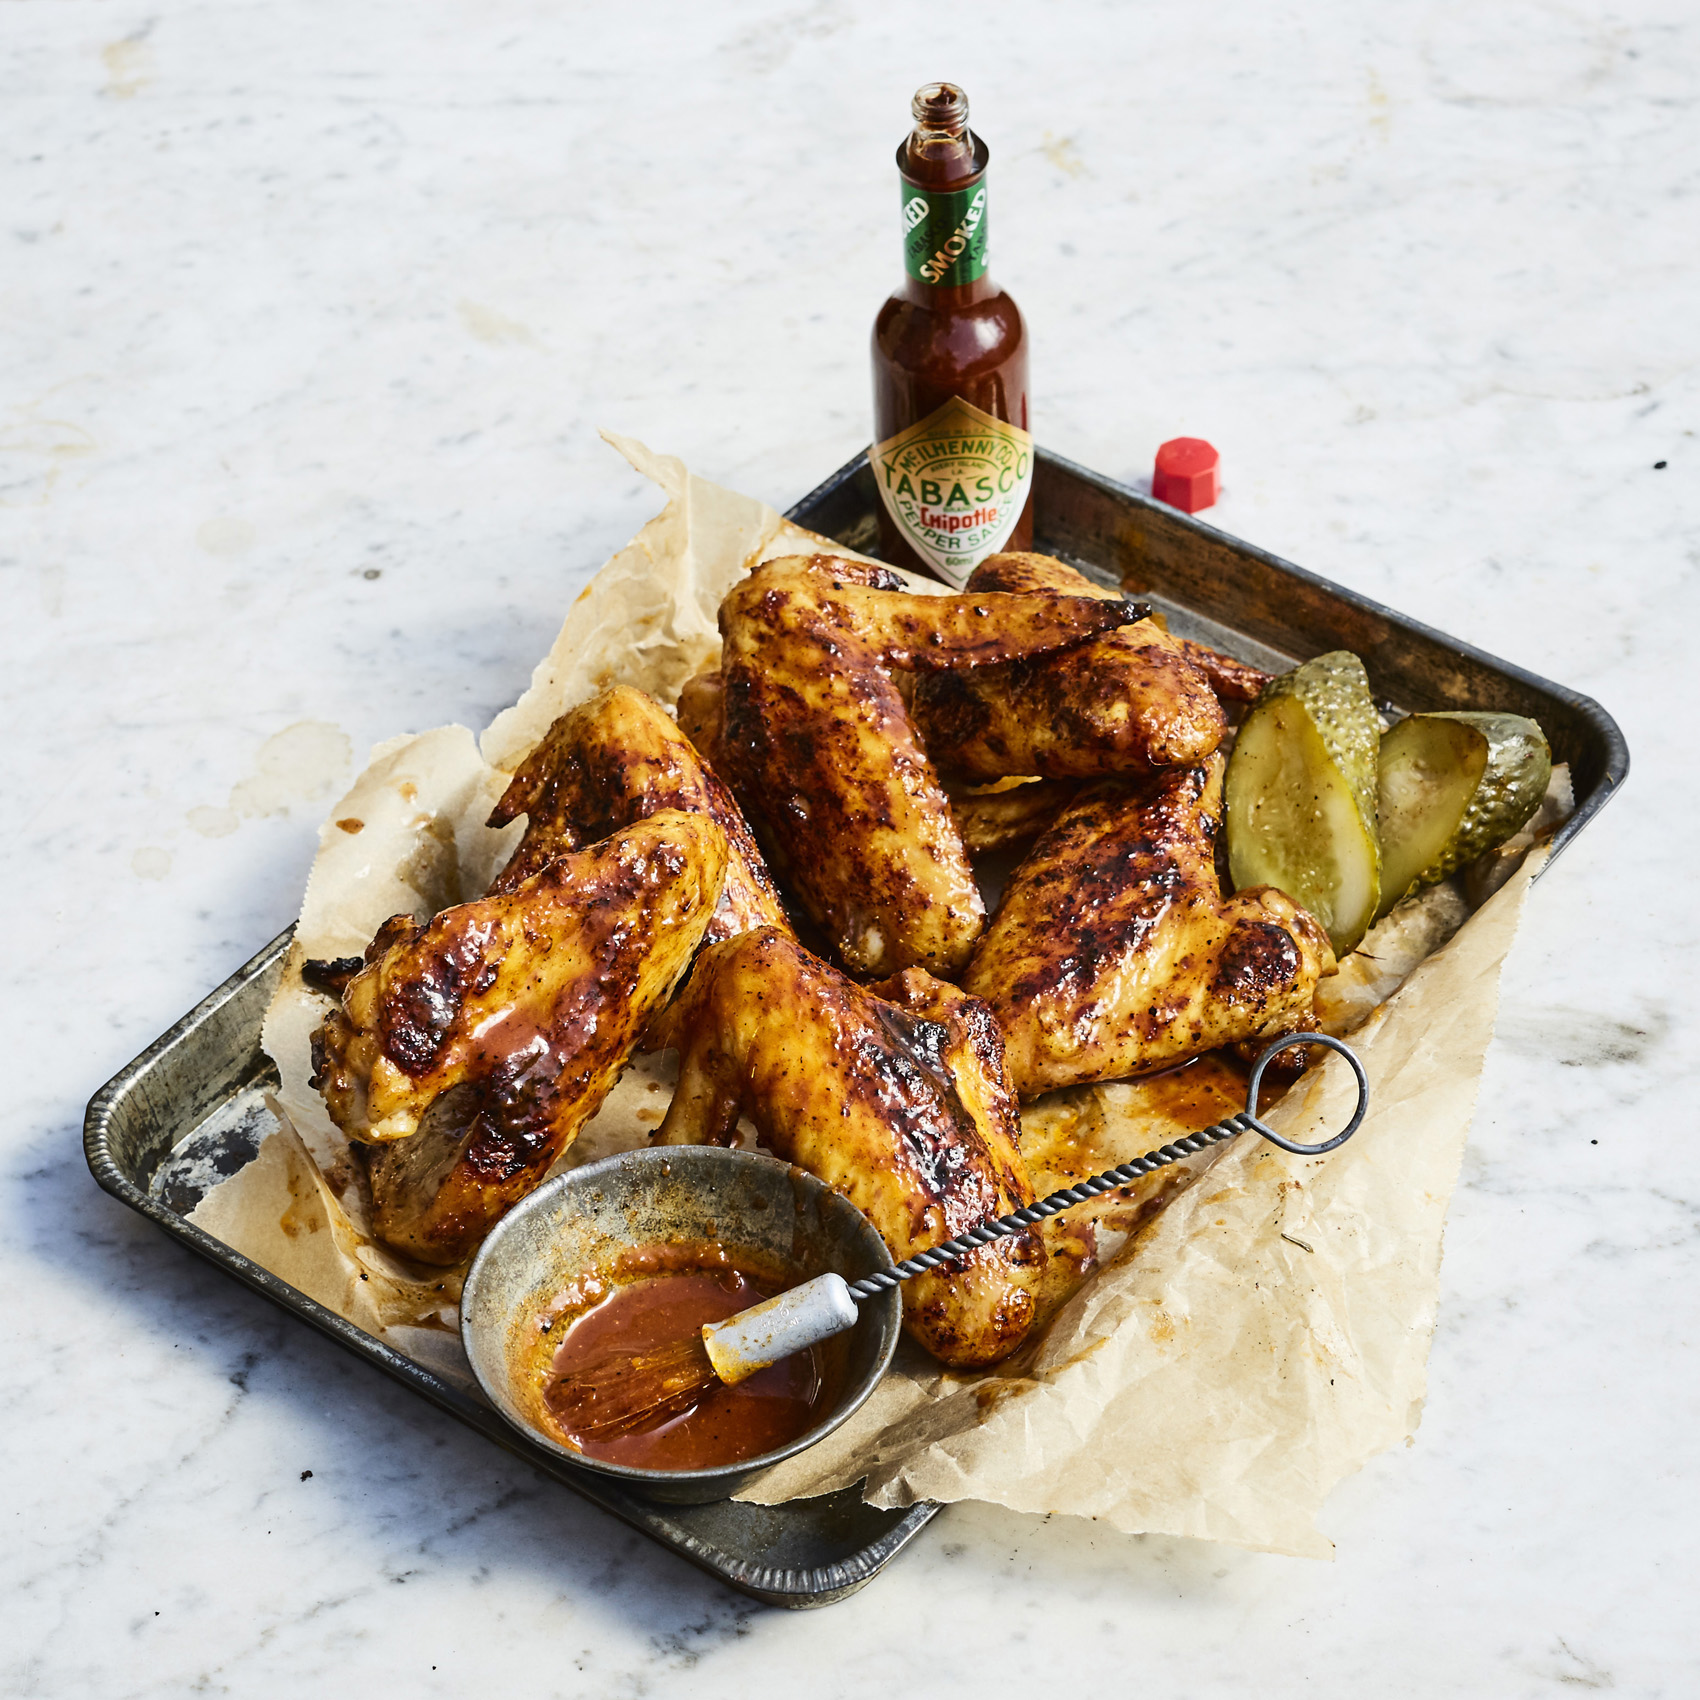 SteveRyan_Photographer_Food_Tabasco_chickenWings_44